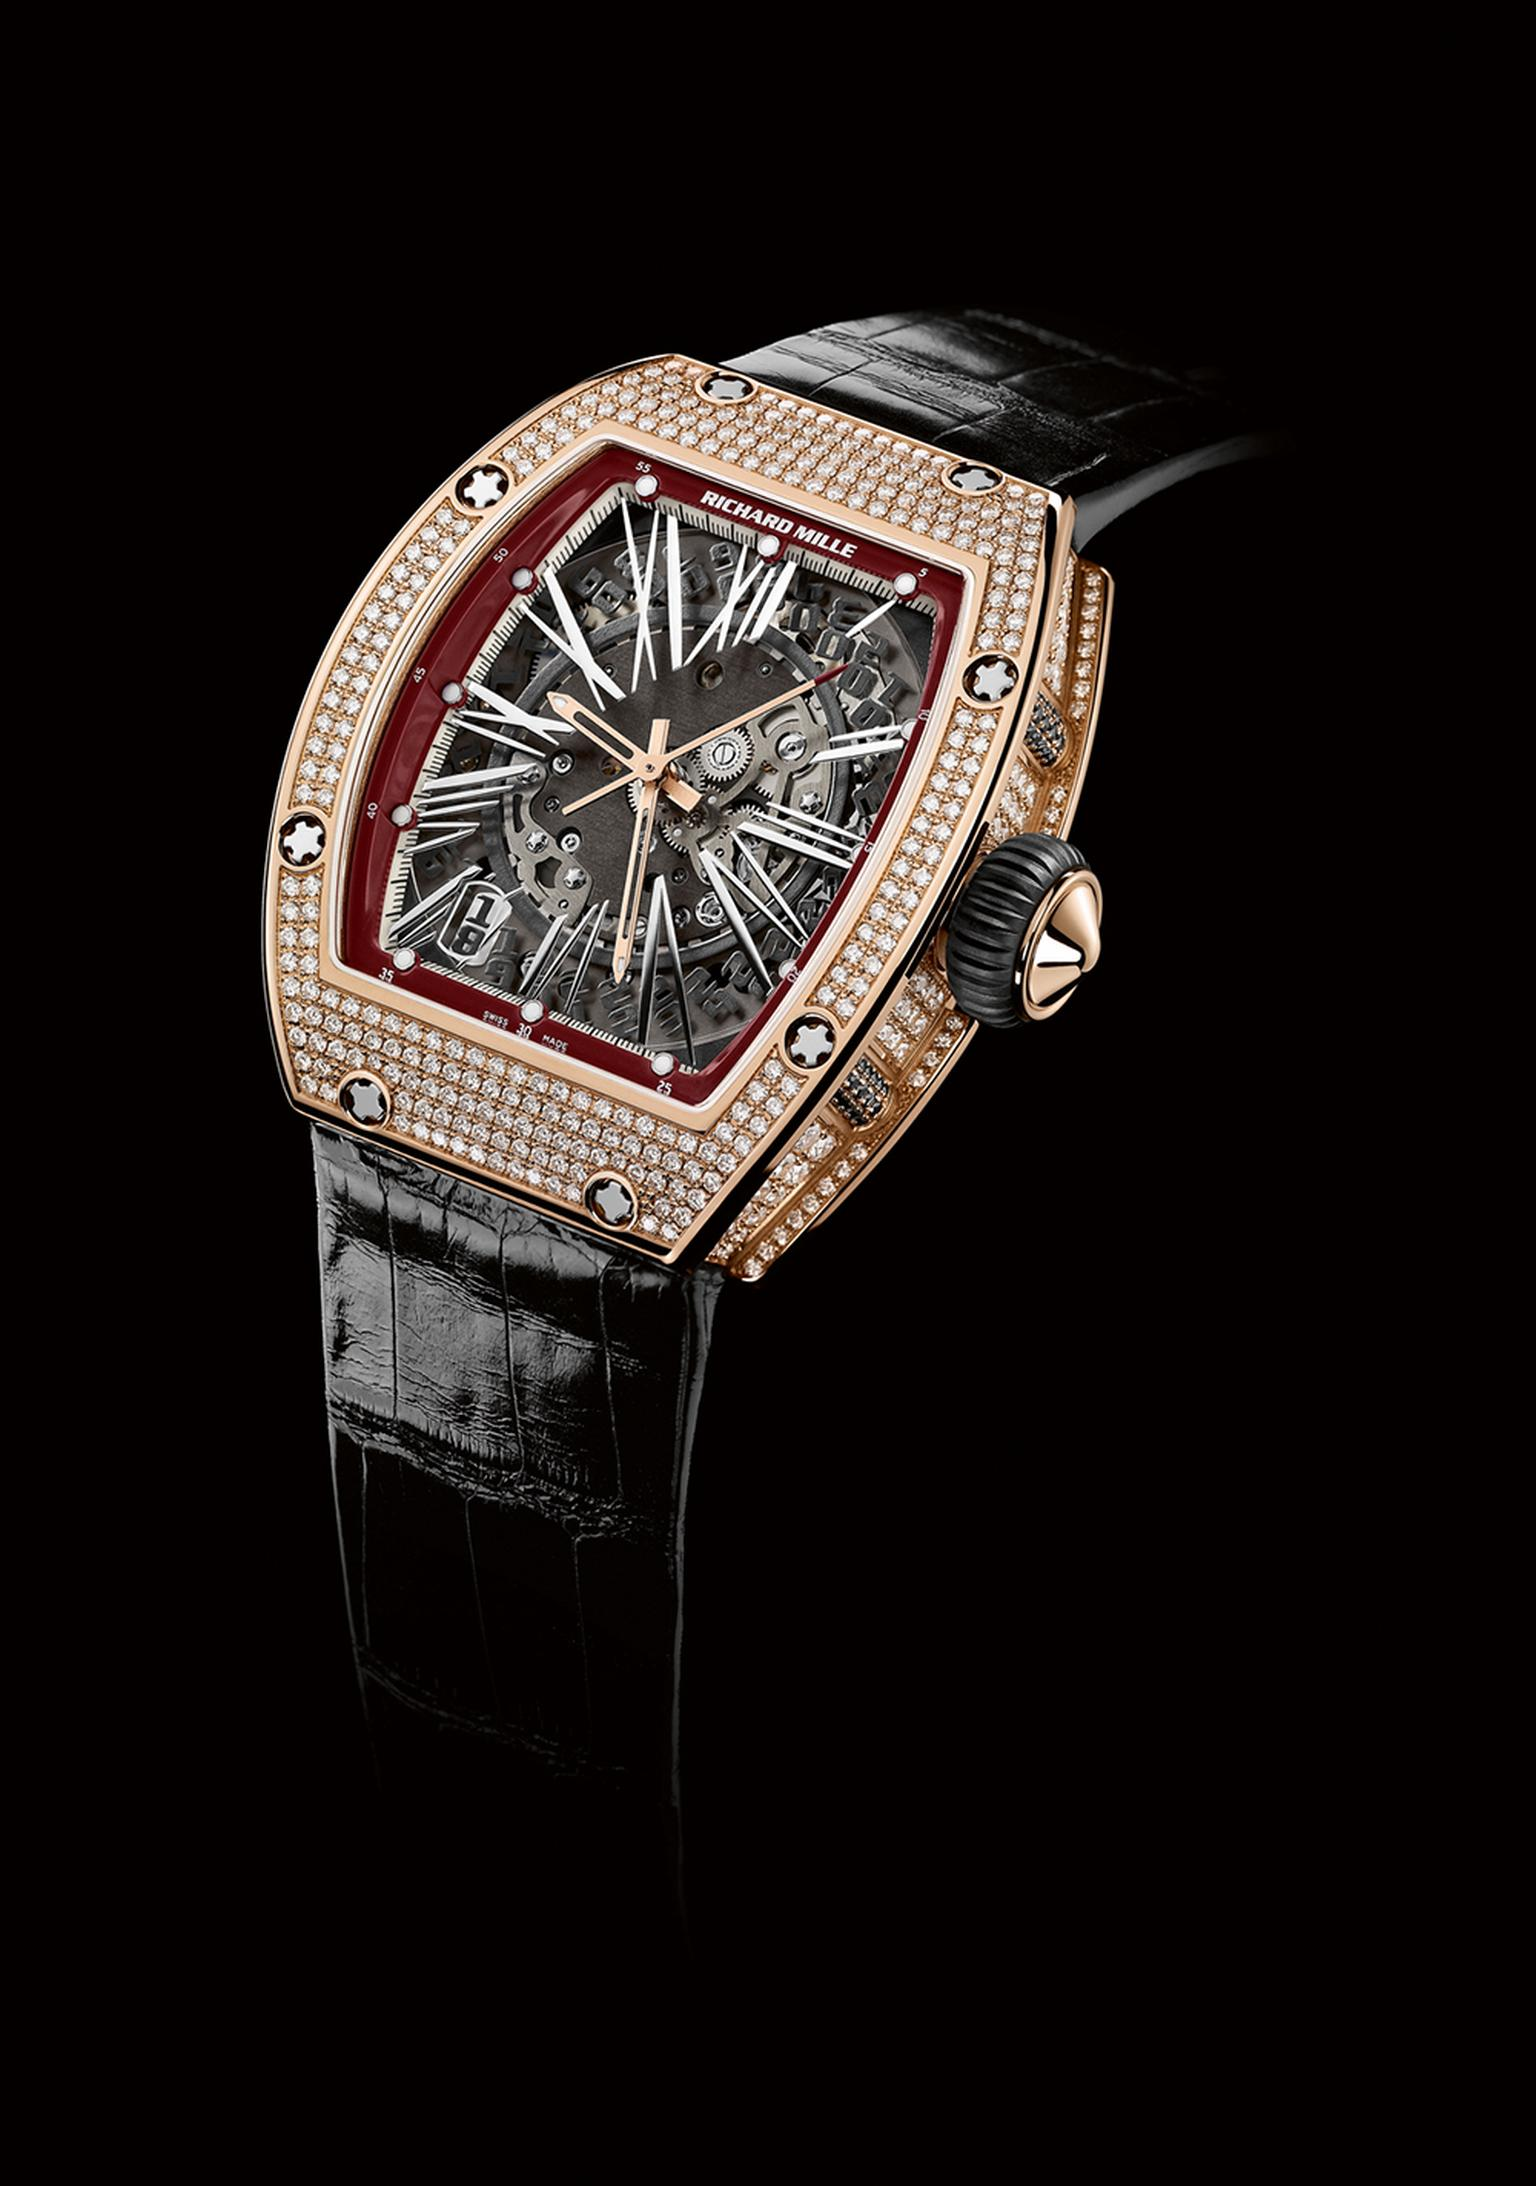 RichardMille023.jpg